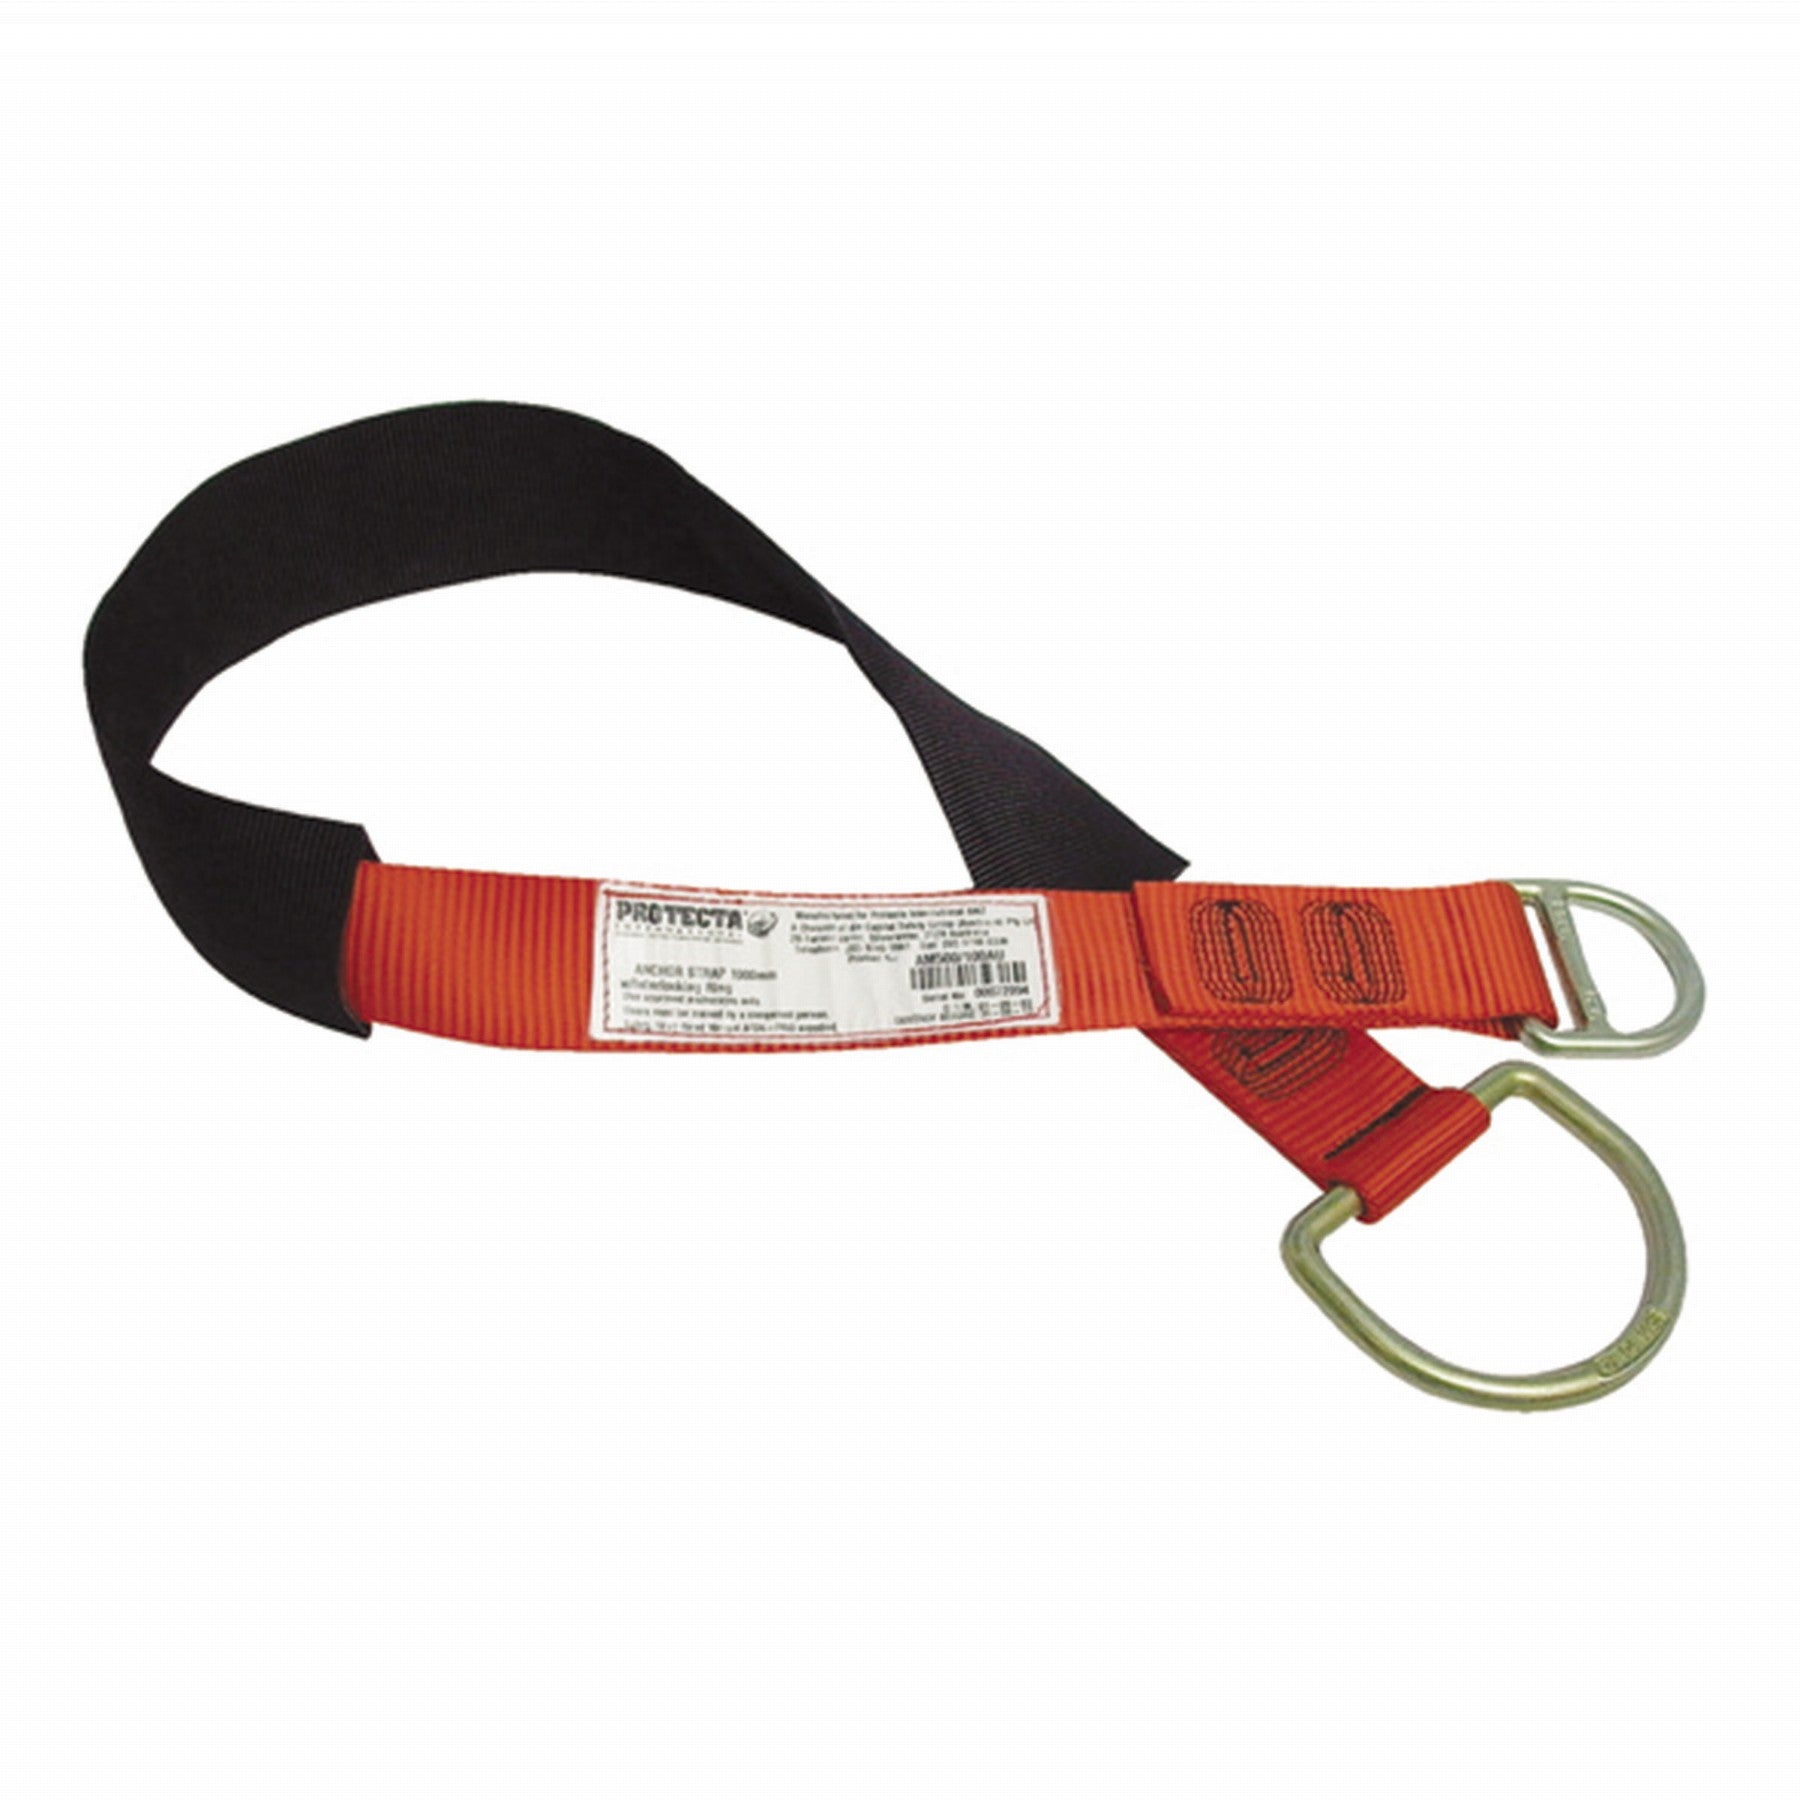 Protecta Anchor Straps - Tie-Off Adaptors with Interlocking Rings